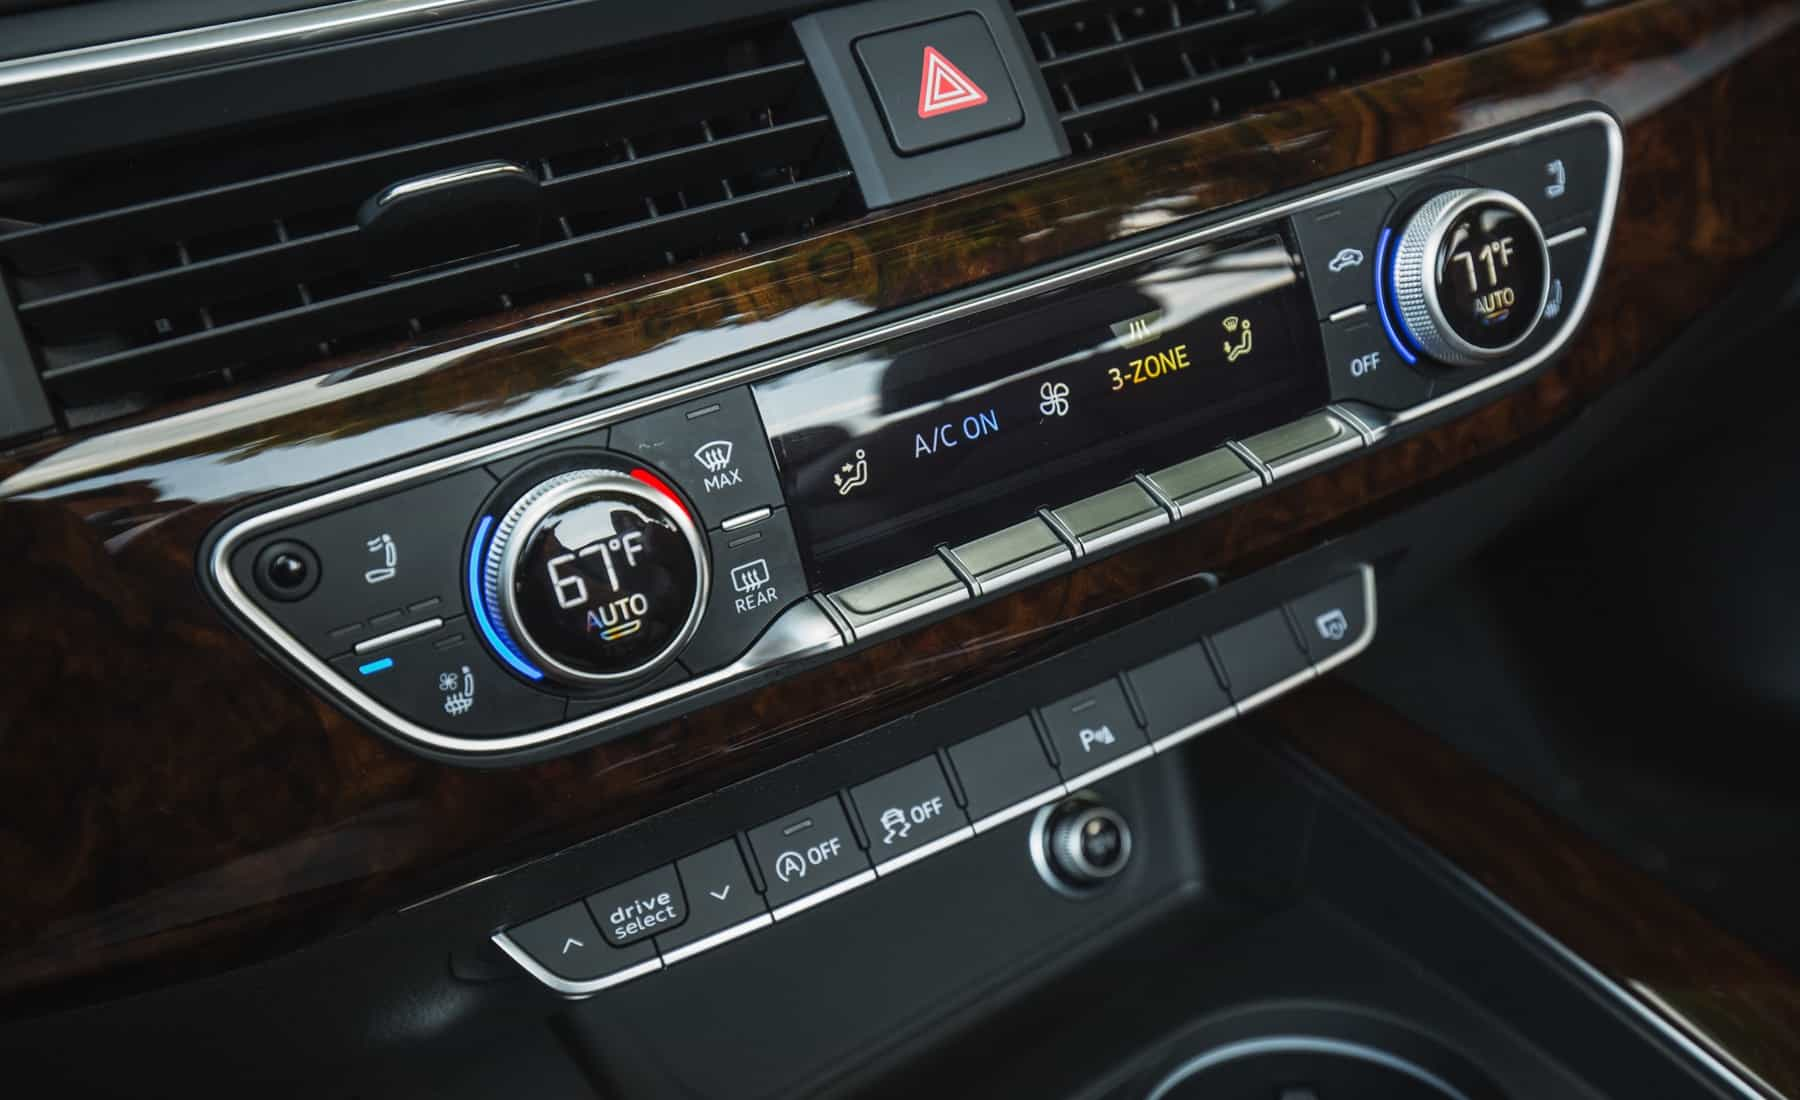 2018 Audi A5 Cabriolet Interior View Climate Control Details (Photo 22 of 45)